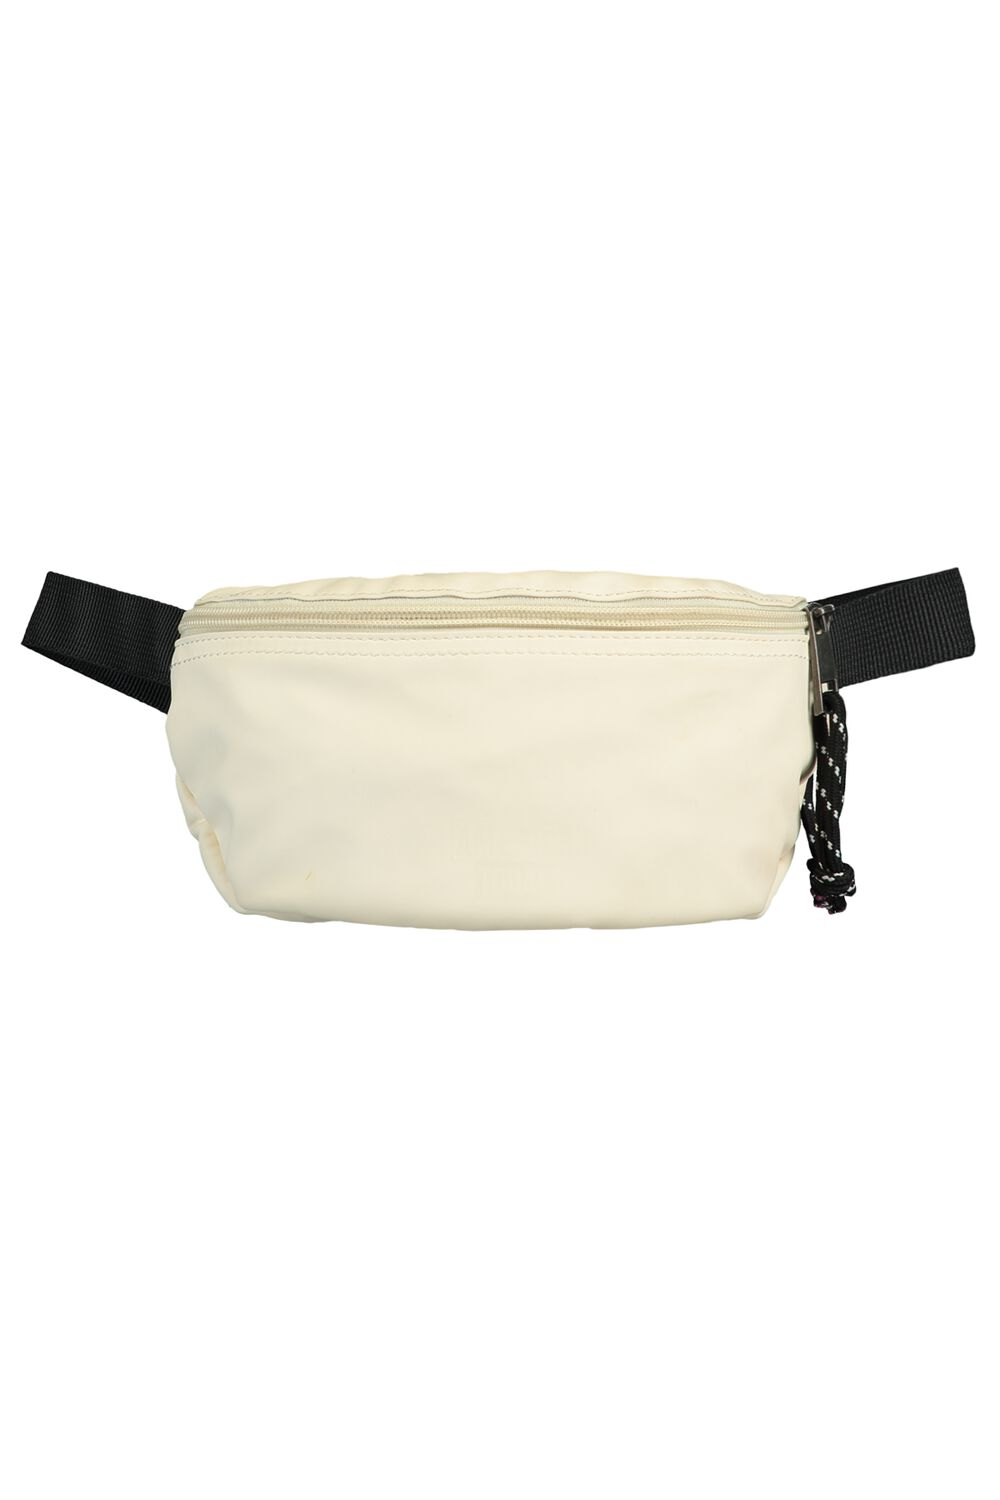 Afbeelding van America Today Dames Fanny Pack Janet Wit ( Maat:ONE SIZE)